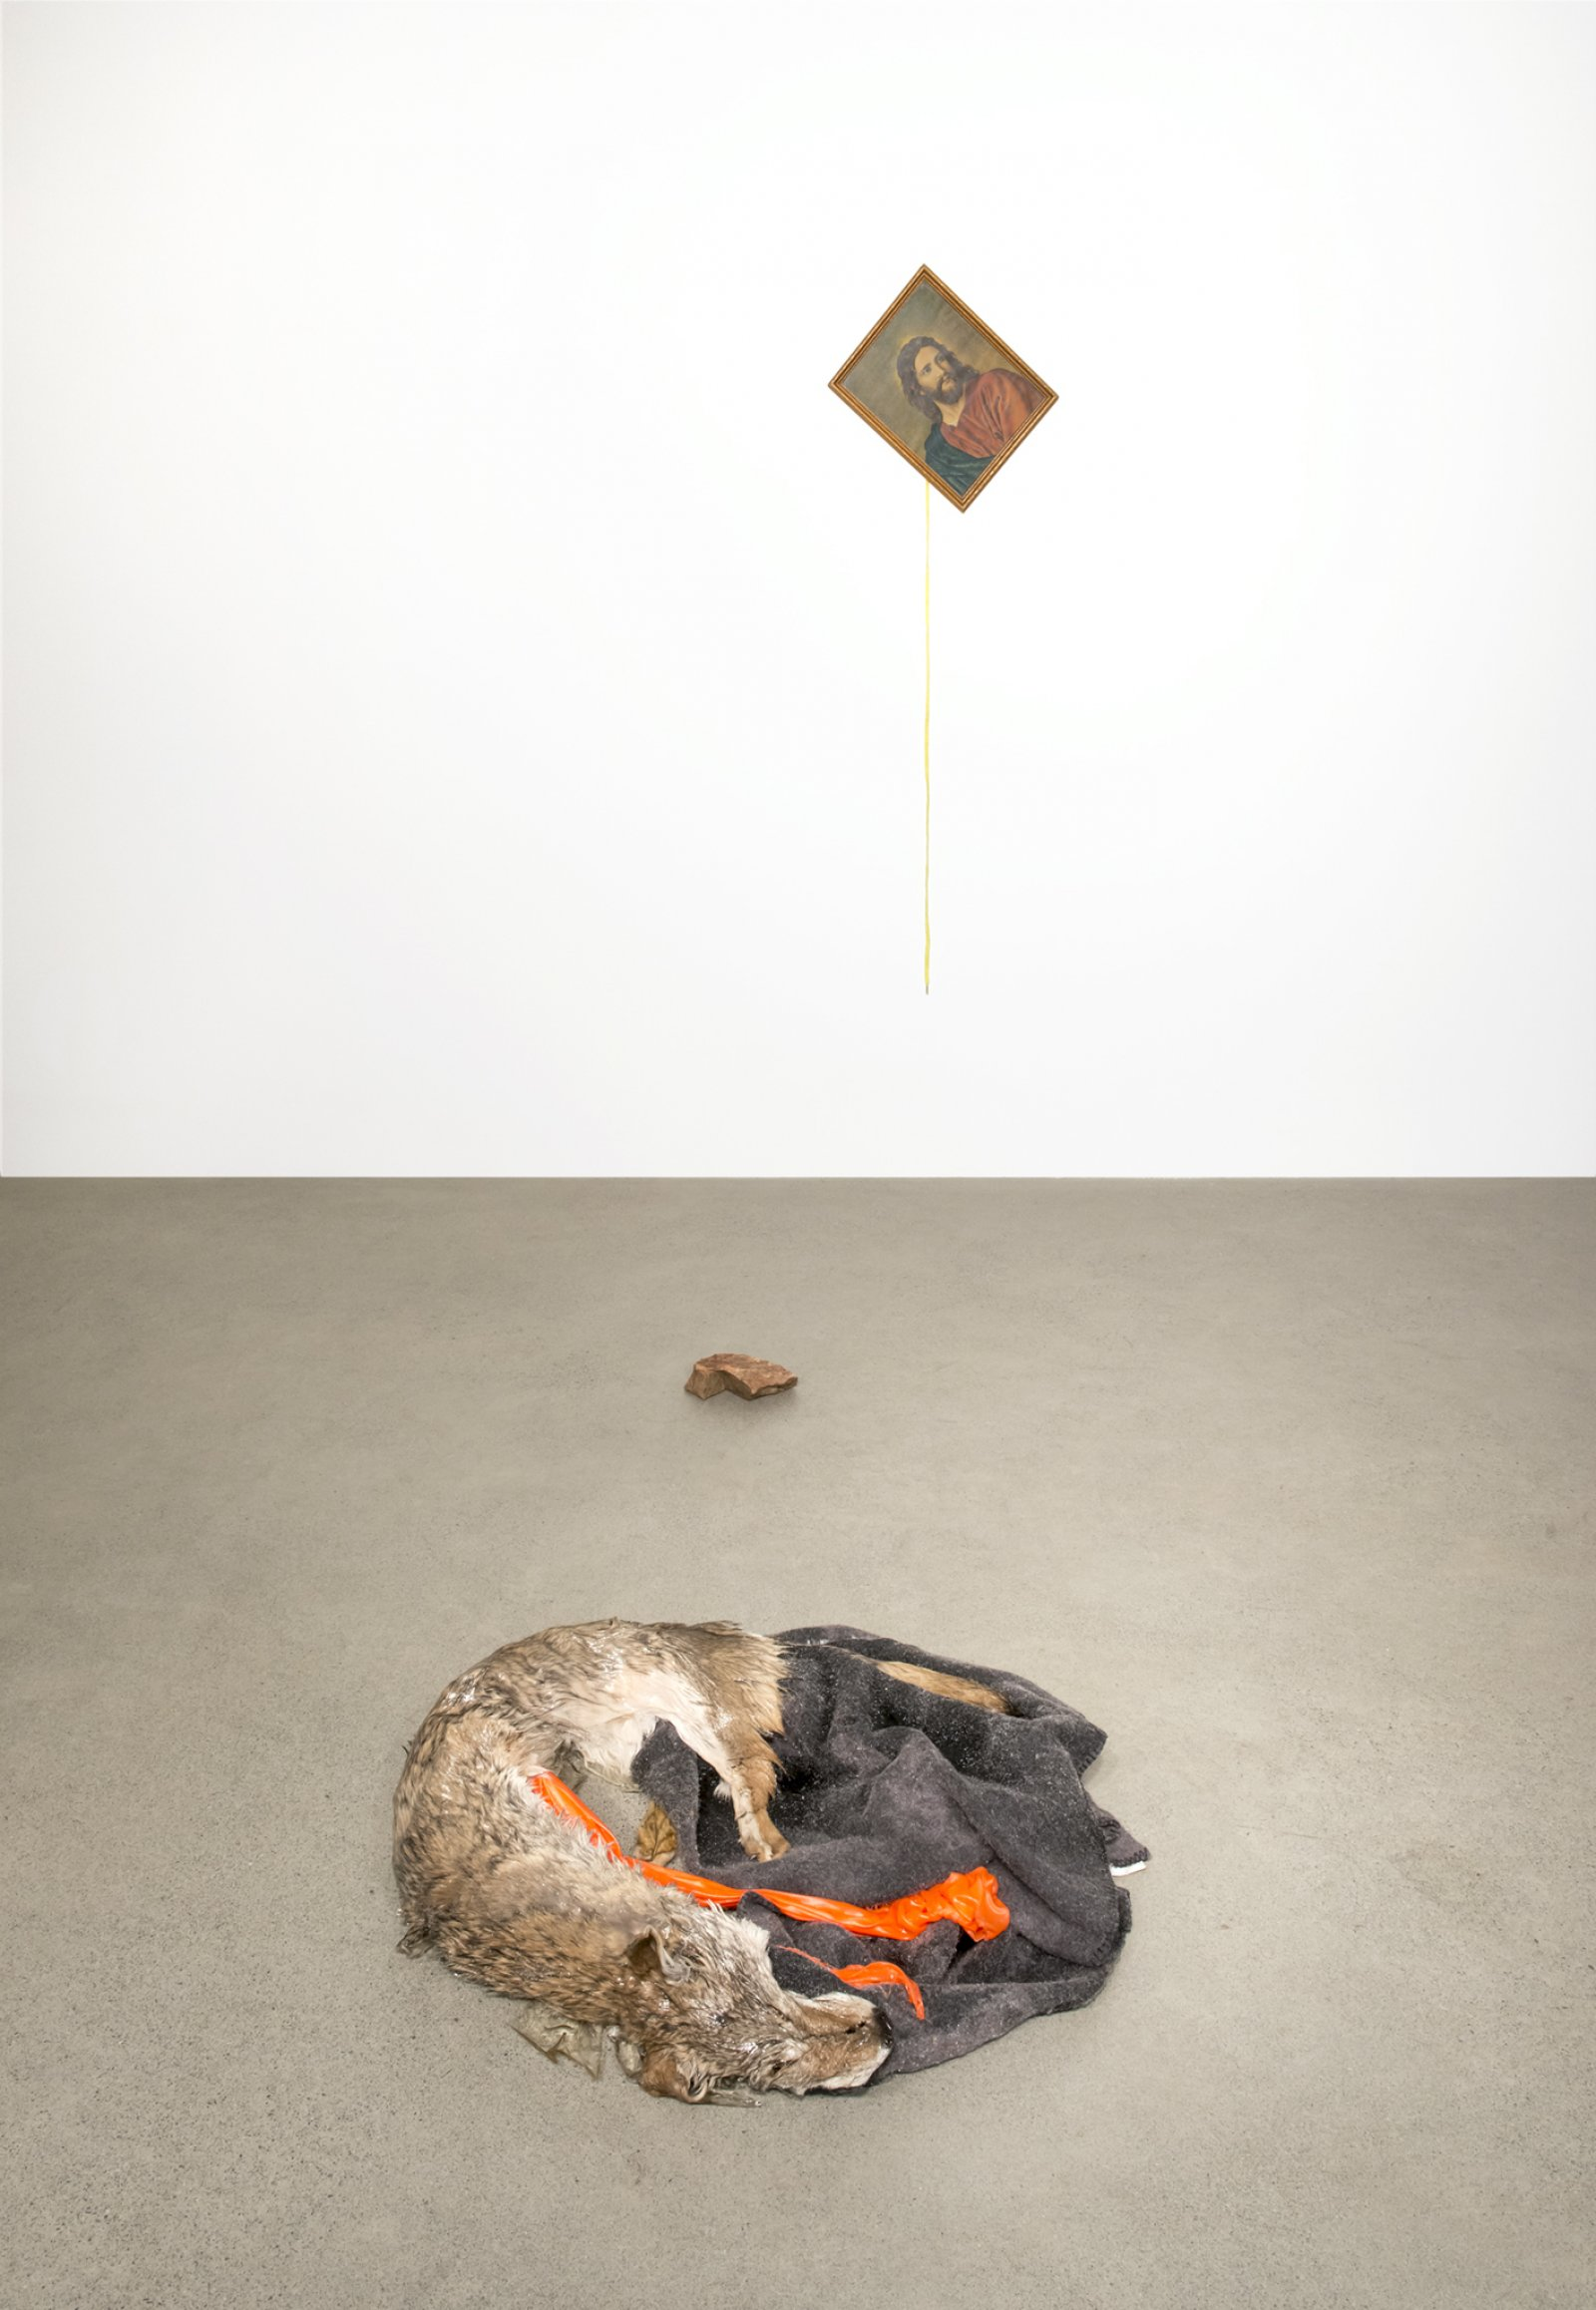 Duane Linklater, Torpor, 2016, coyote fur, wool blanket, polyester cloth, resin, found picture, shoelace, brick, dimensions variable